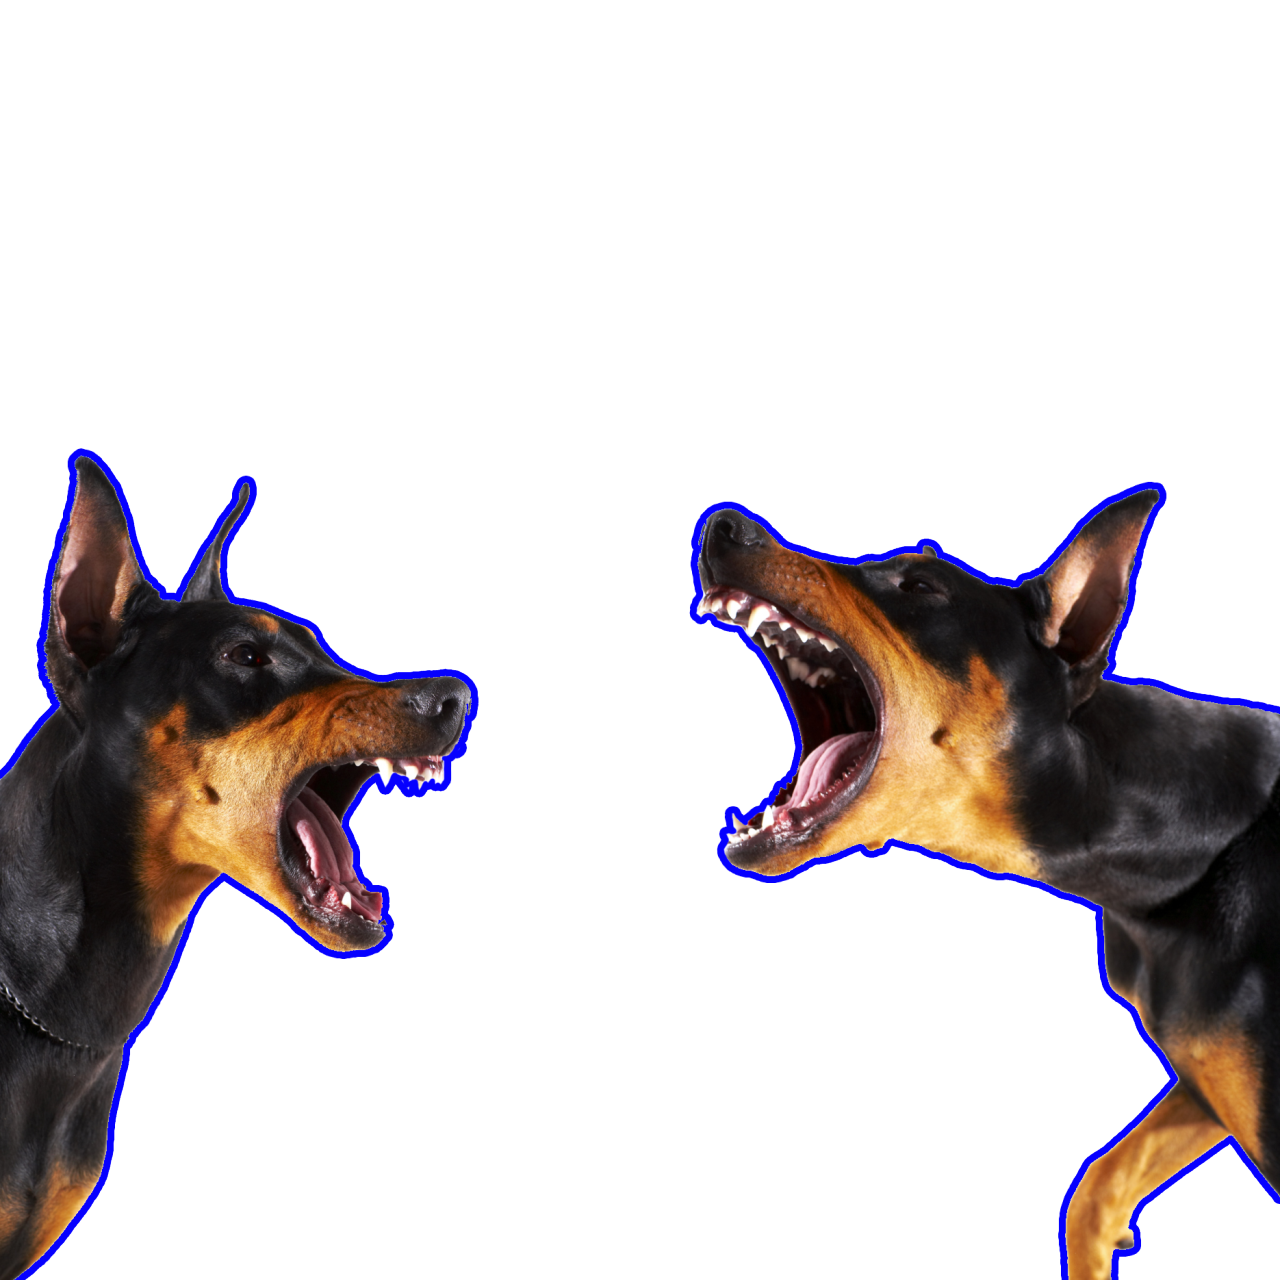 Pin By Wes So On Animaux Aggressive Dog Angry Dog Dog Tumblr